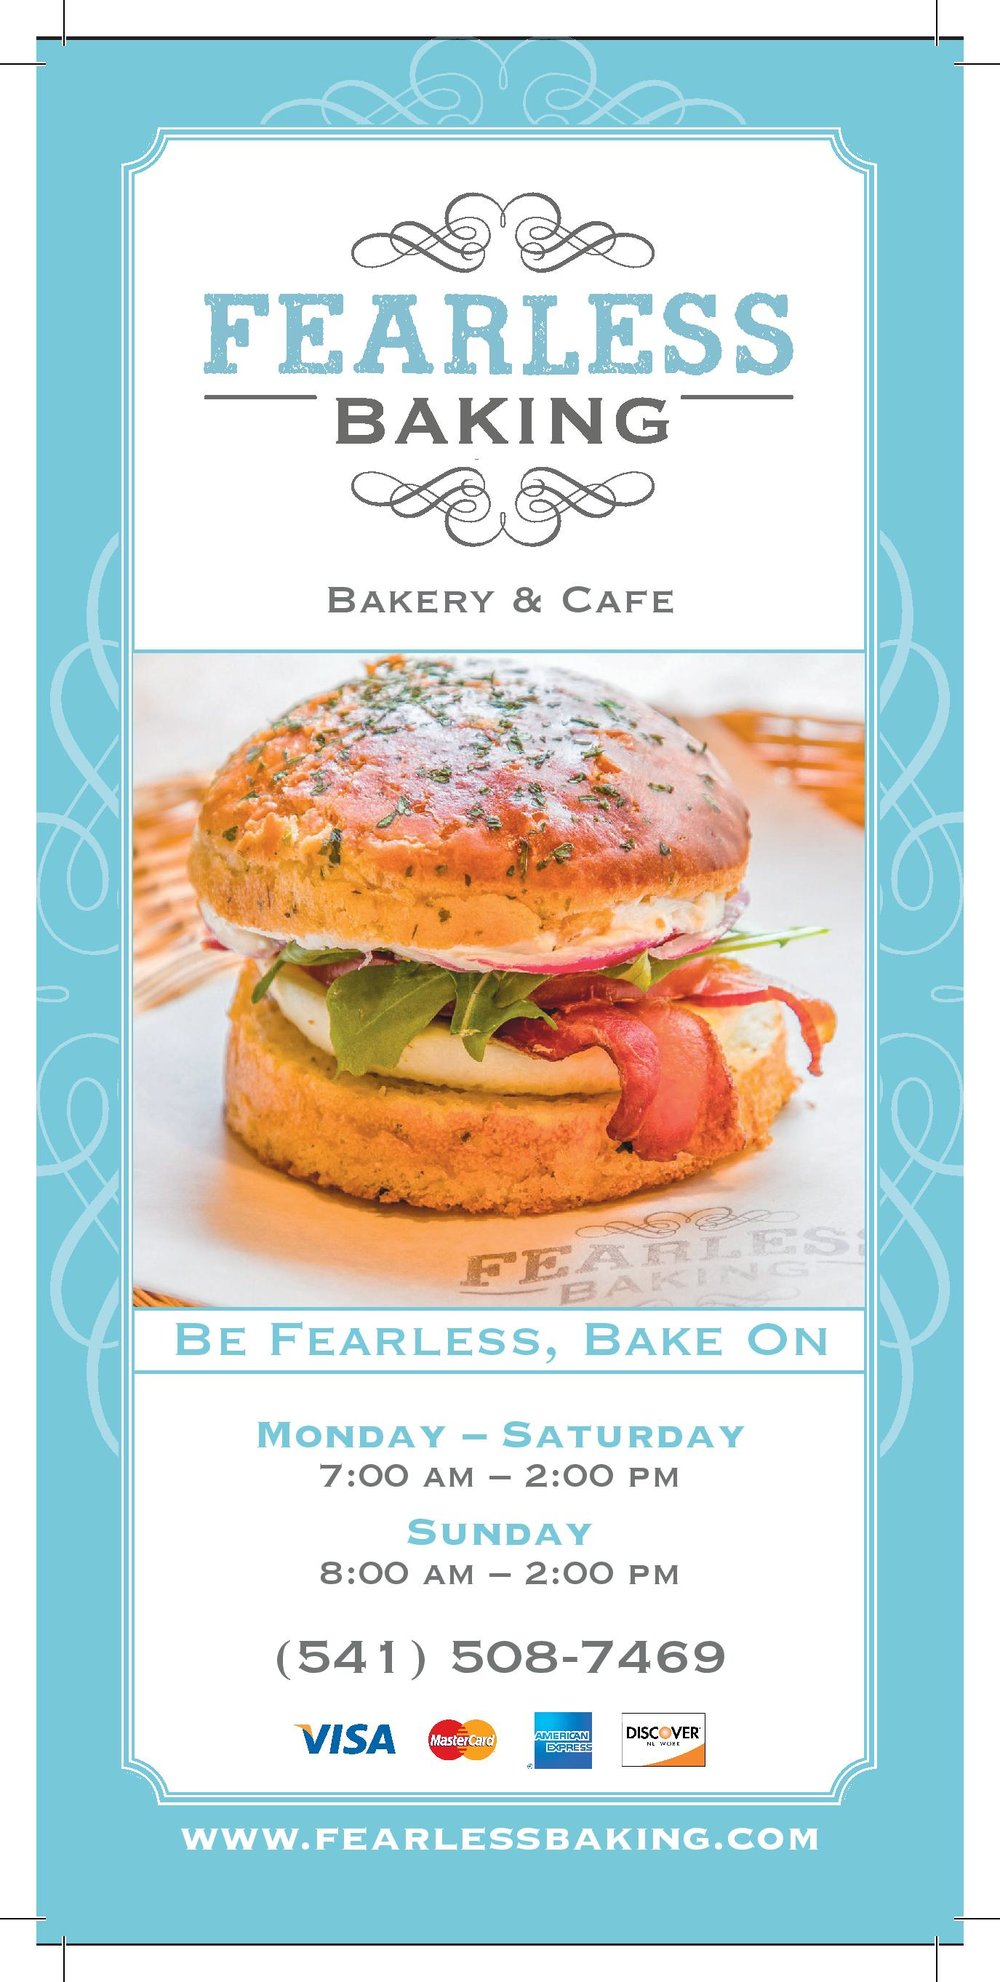 110_Fearless Baking Book Menu-page-001.jpg